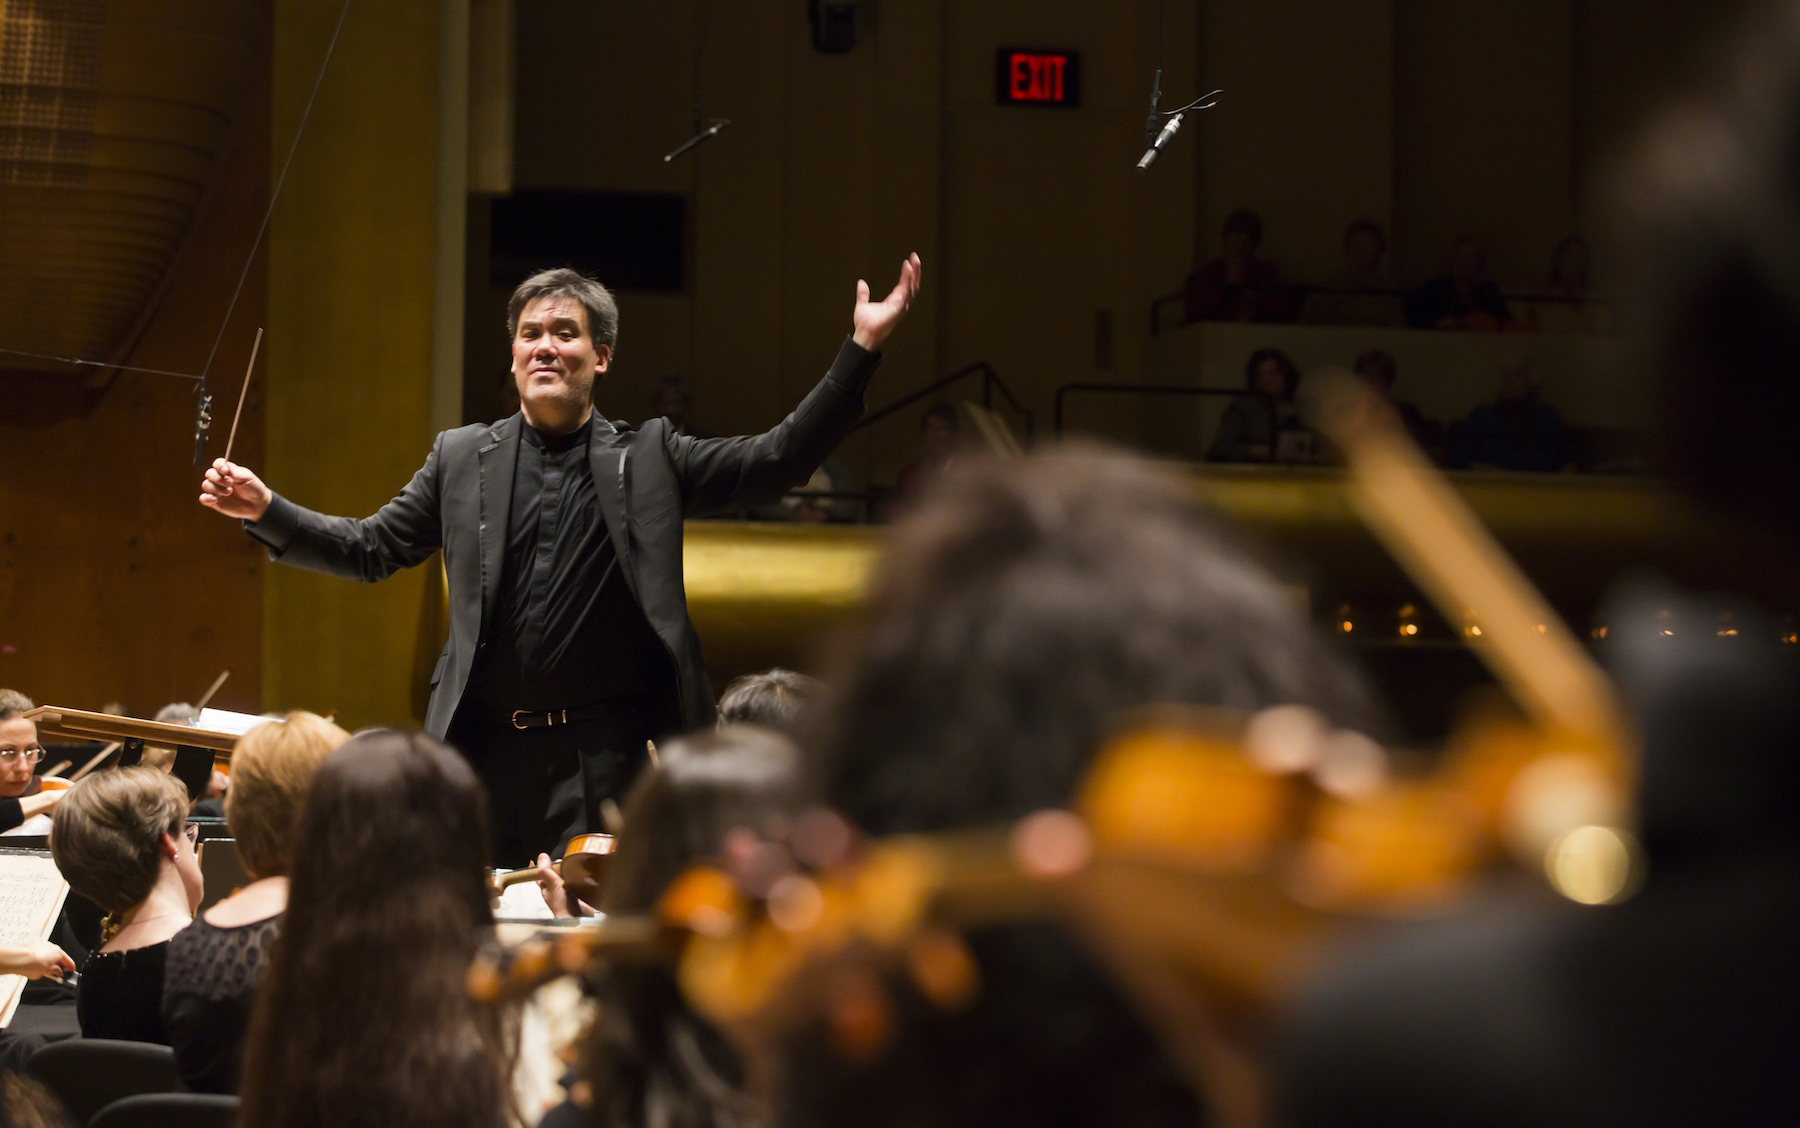 Alan Gilbert conducts the New York Philharmonic at Avery Fisher Hall, 10/23/14. (credit: Chris Lee)